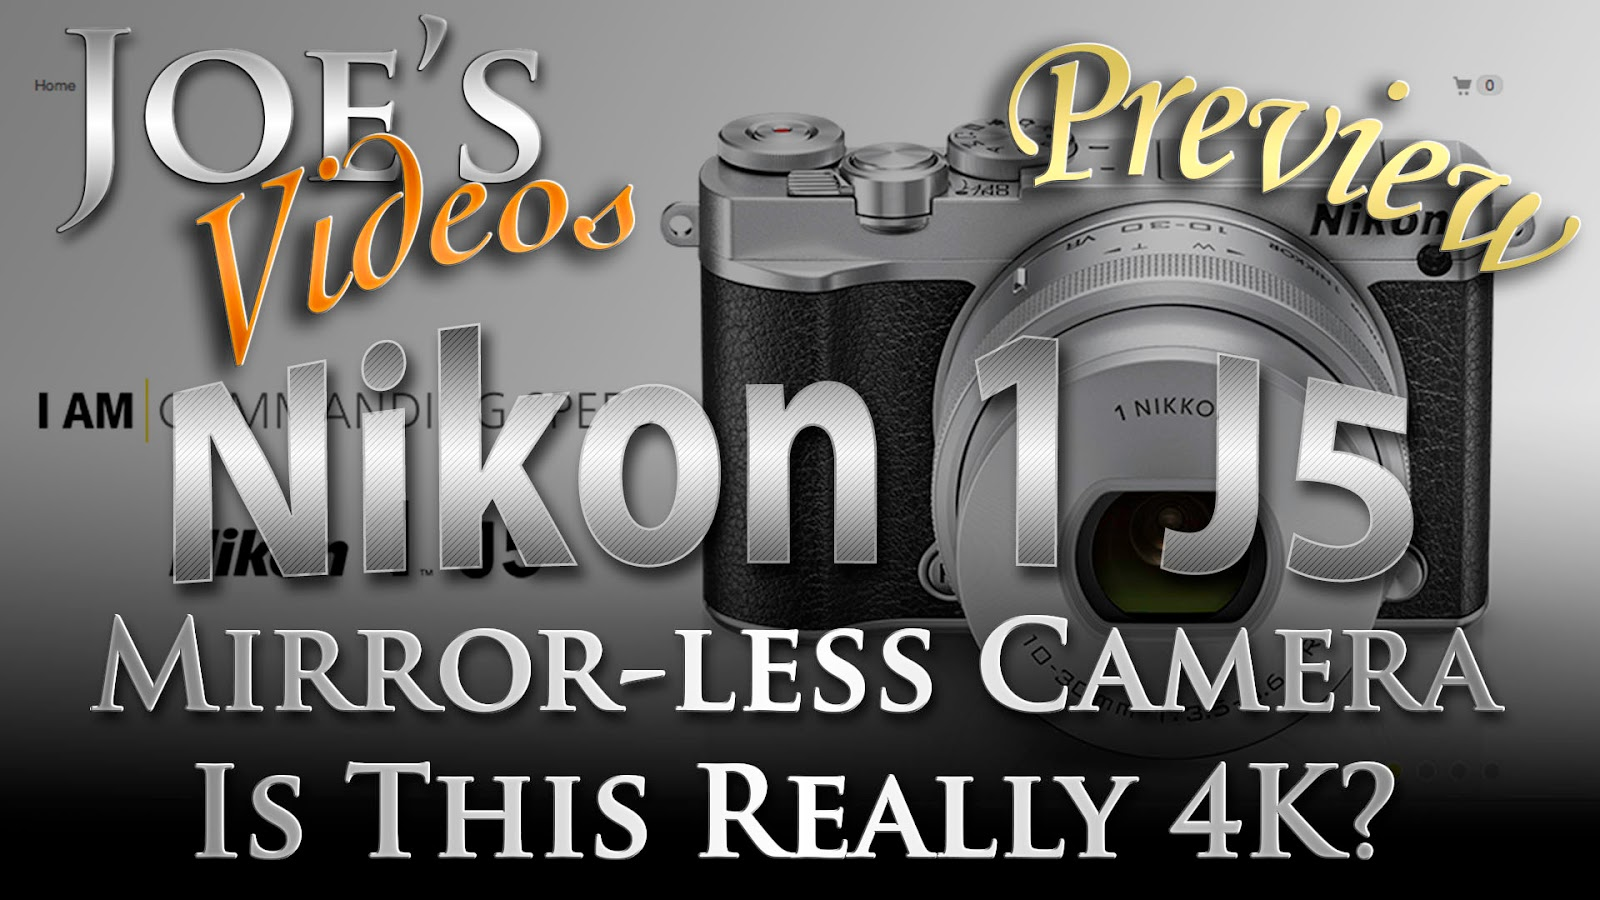 Nikon 1 J5 Mirror-less Camera Preview, Is This Really 4K?  | Joe's Videos